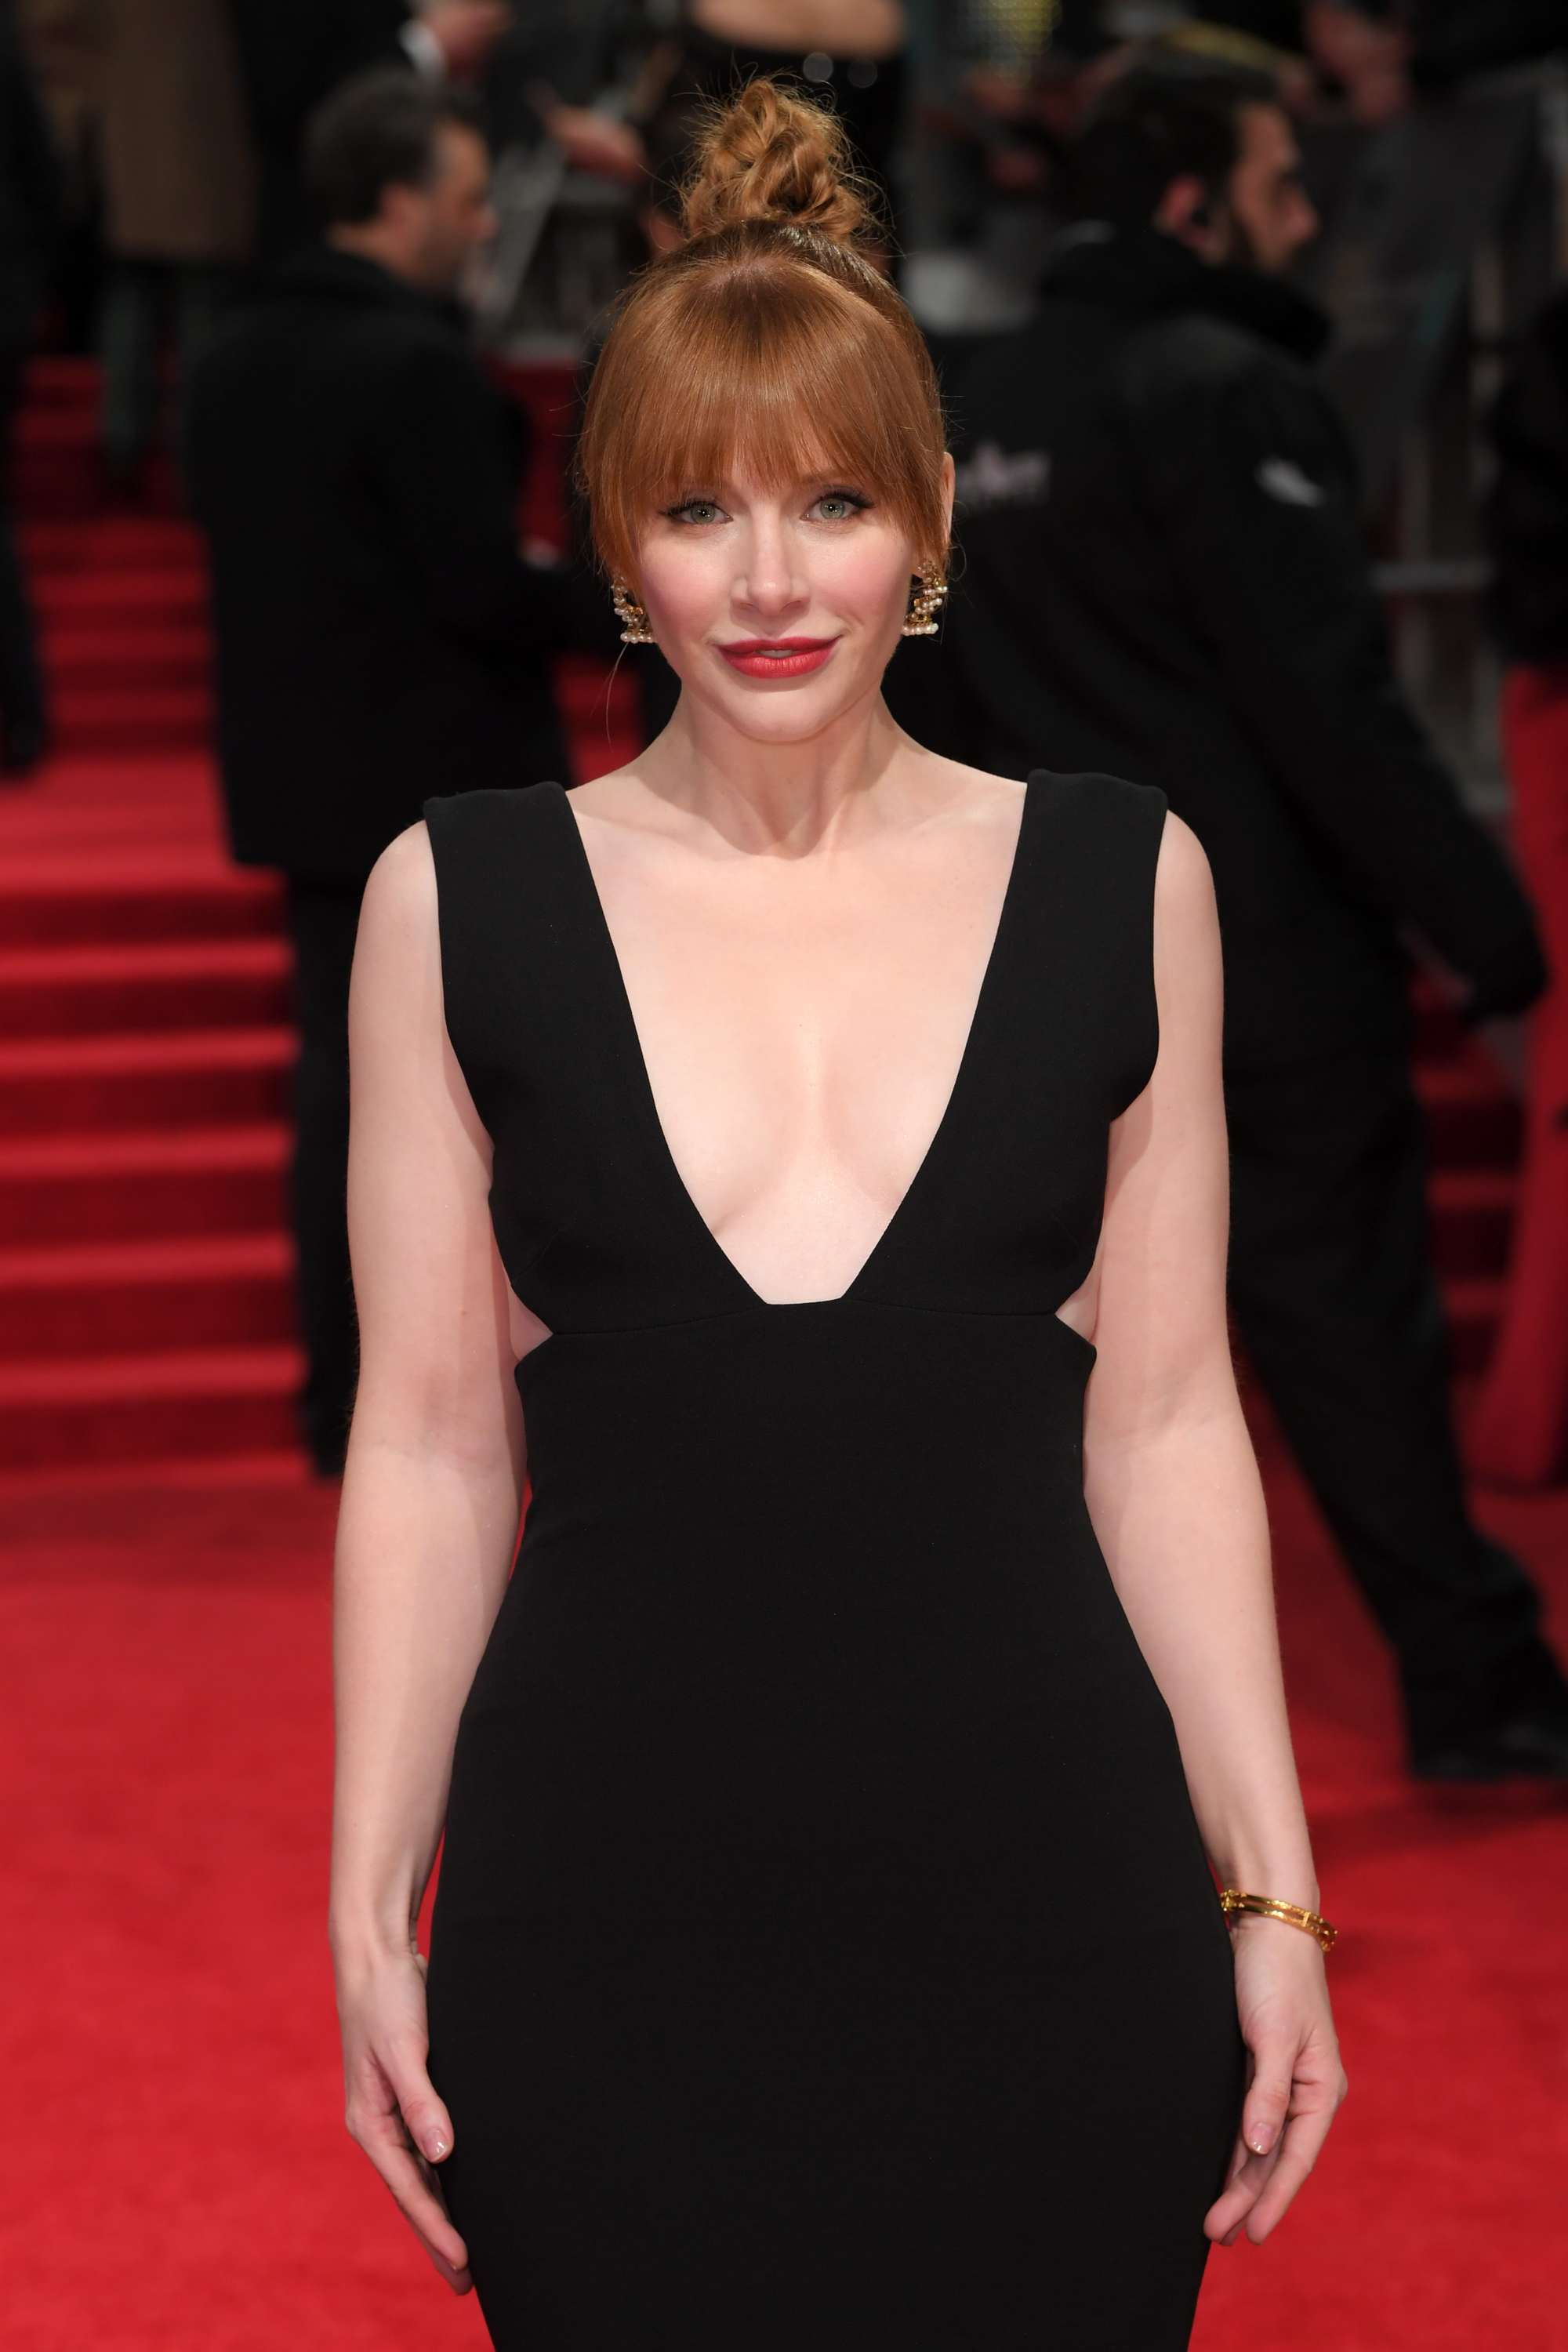 Bryce Dallas Howard wearing a plunging black gown with her red hair styled into a top knot updo